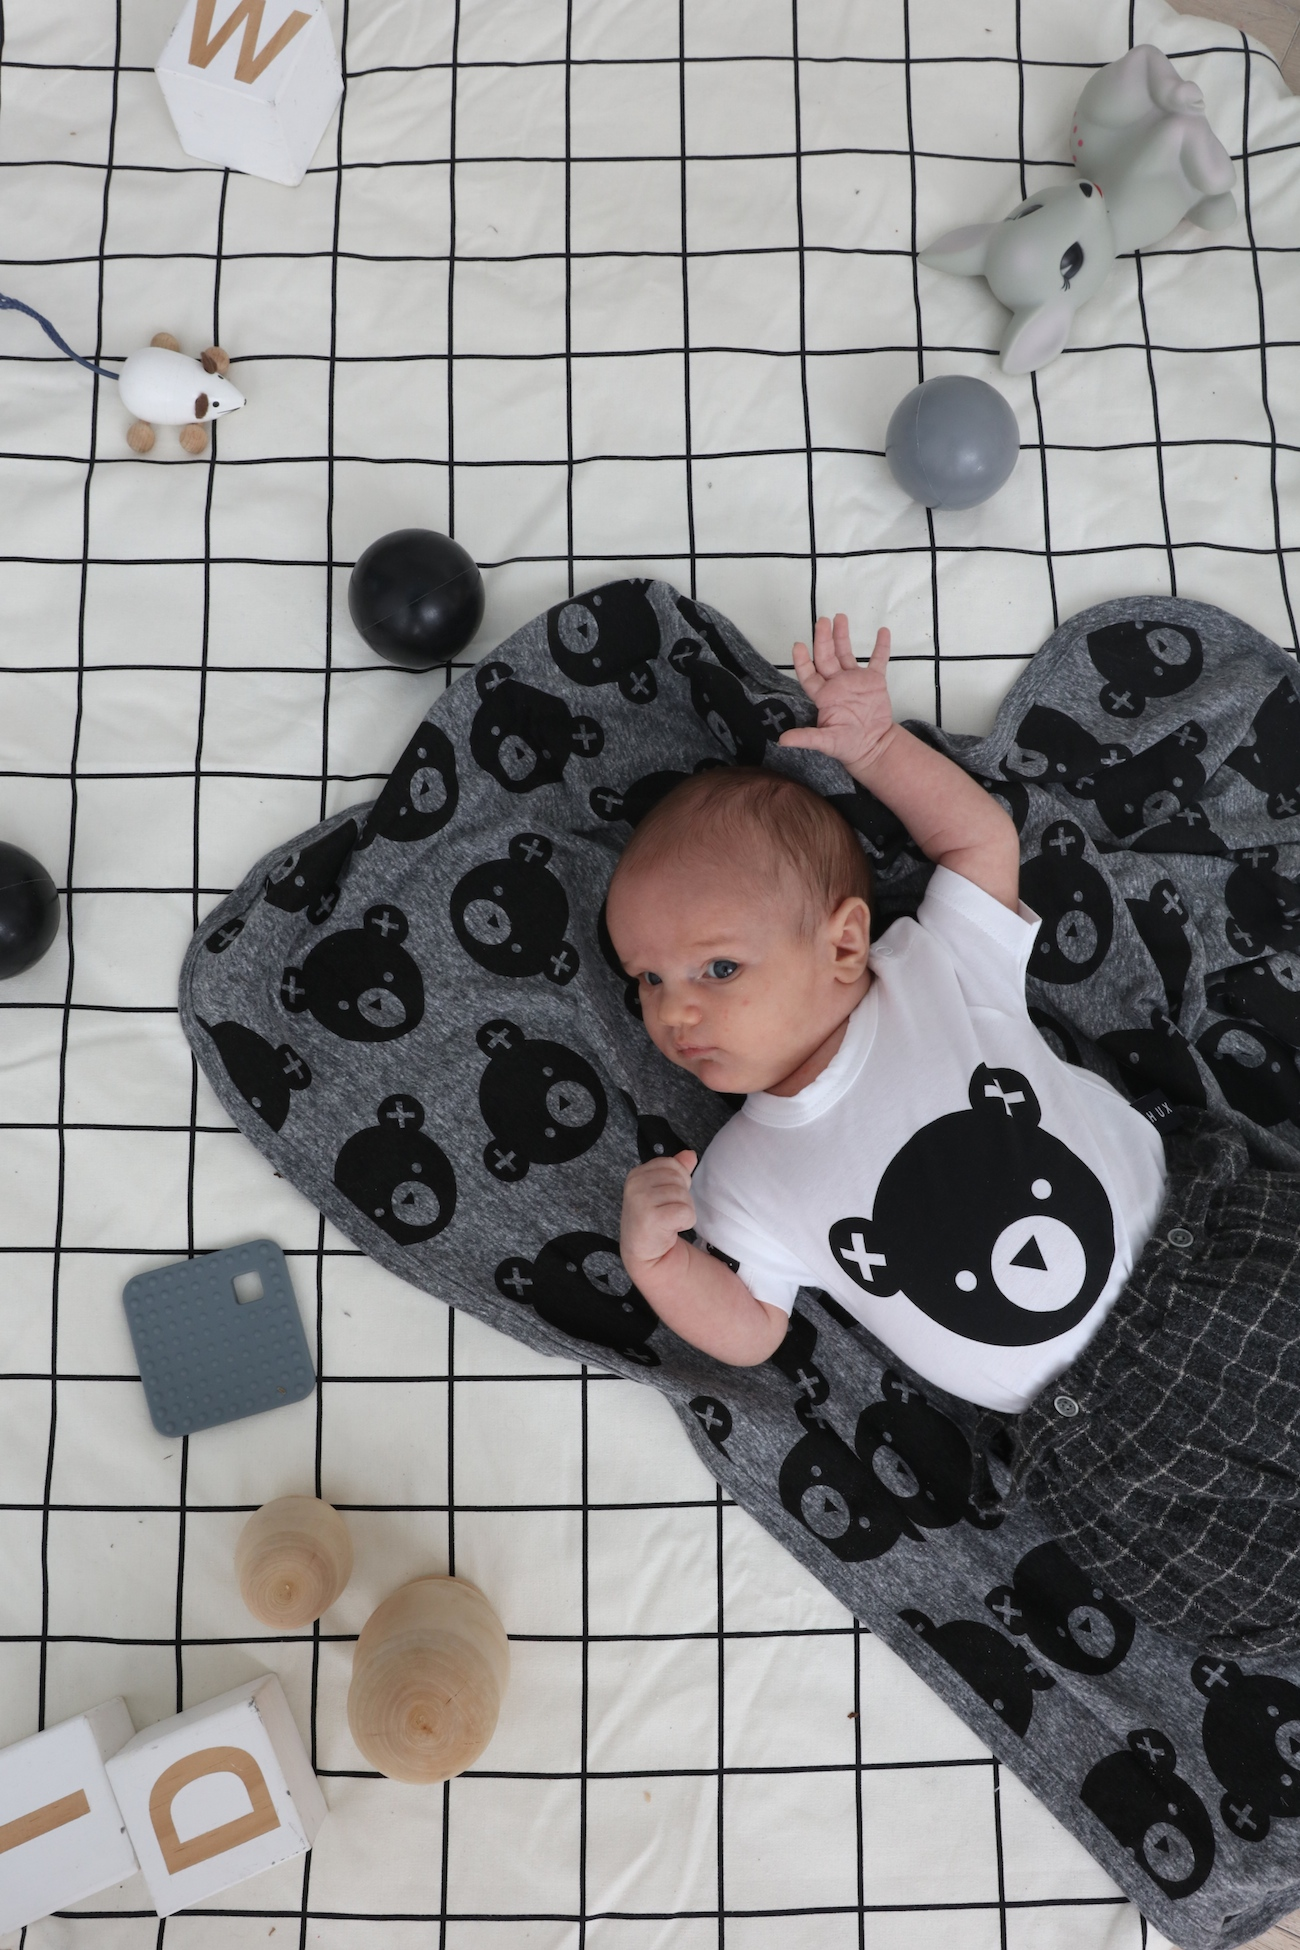 Wildfire_teepees_playmat_grid_hux_baby_monkey_mccoy